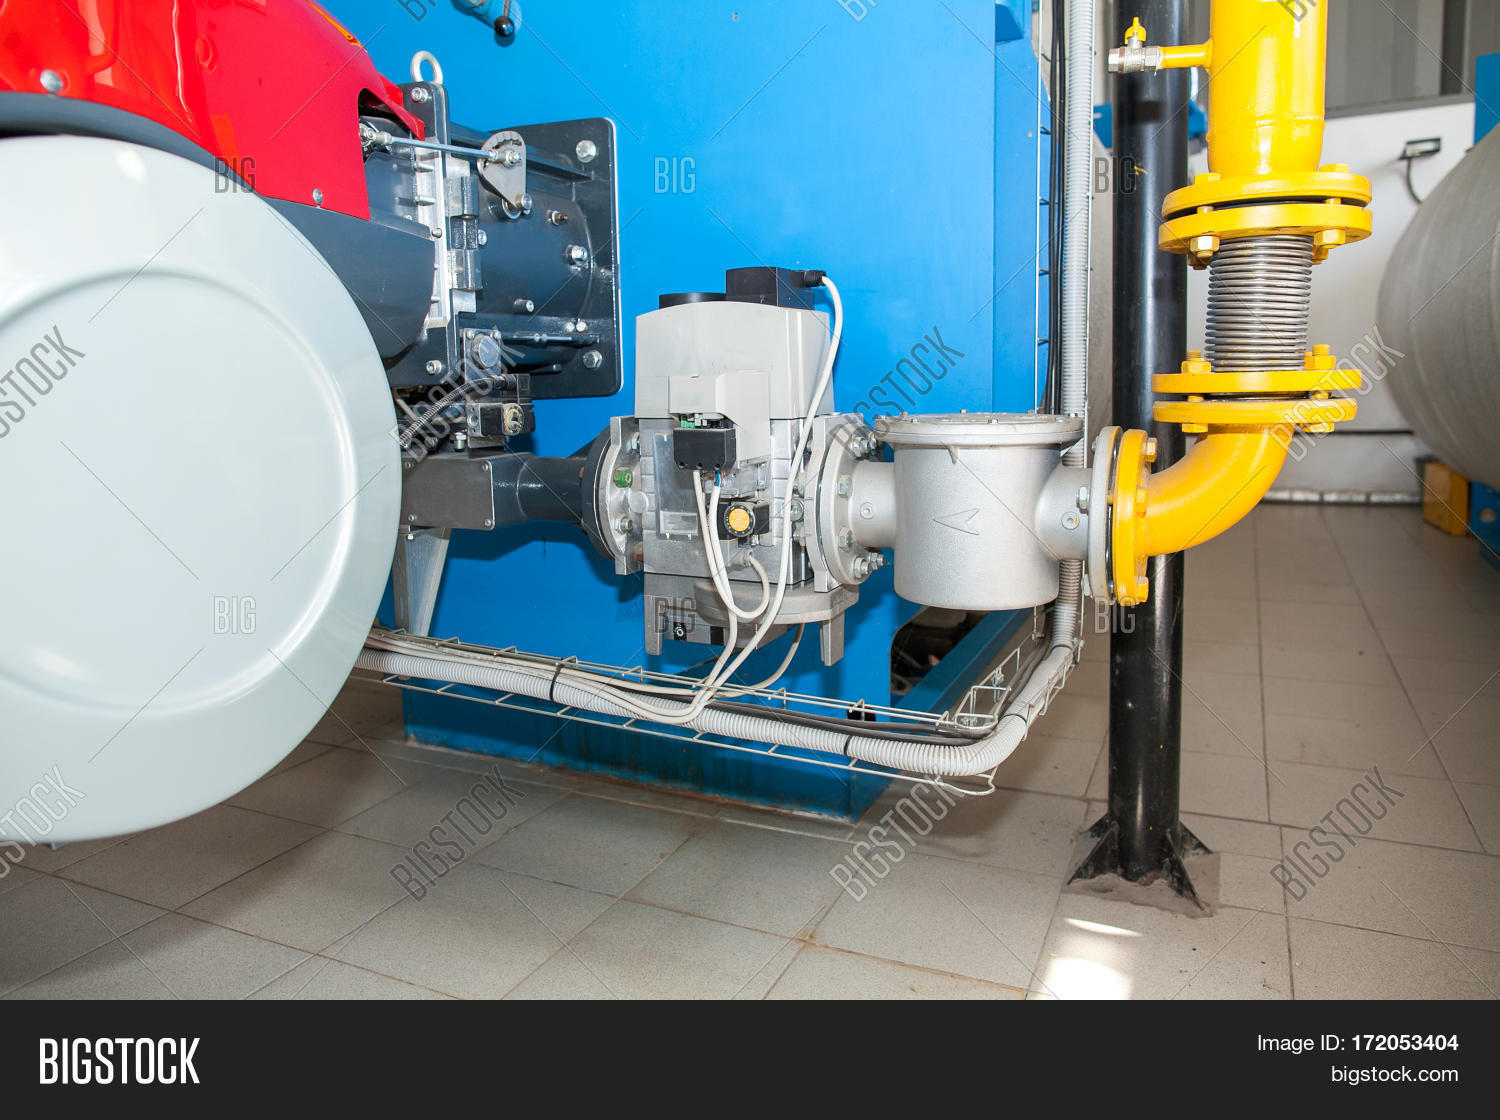 Modern Boiler Room Image & Photo (Free Trial) | Bigstock